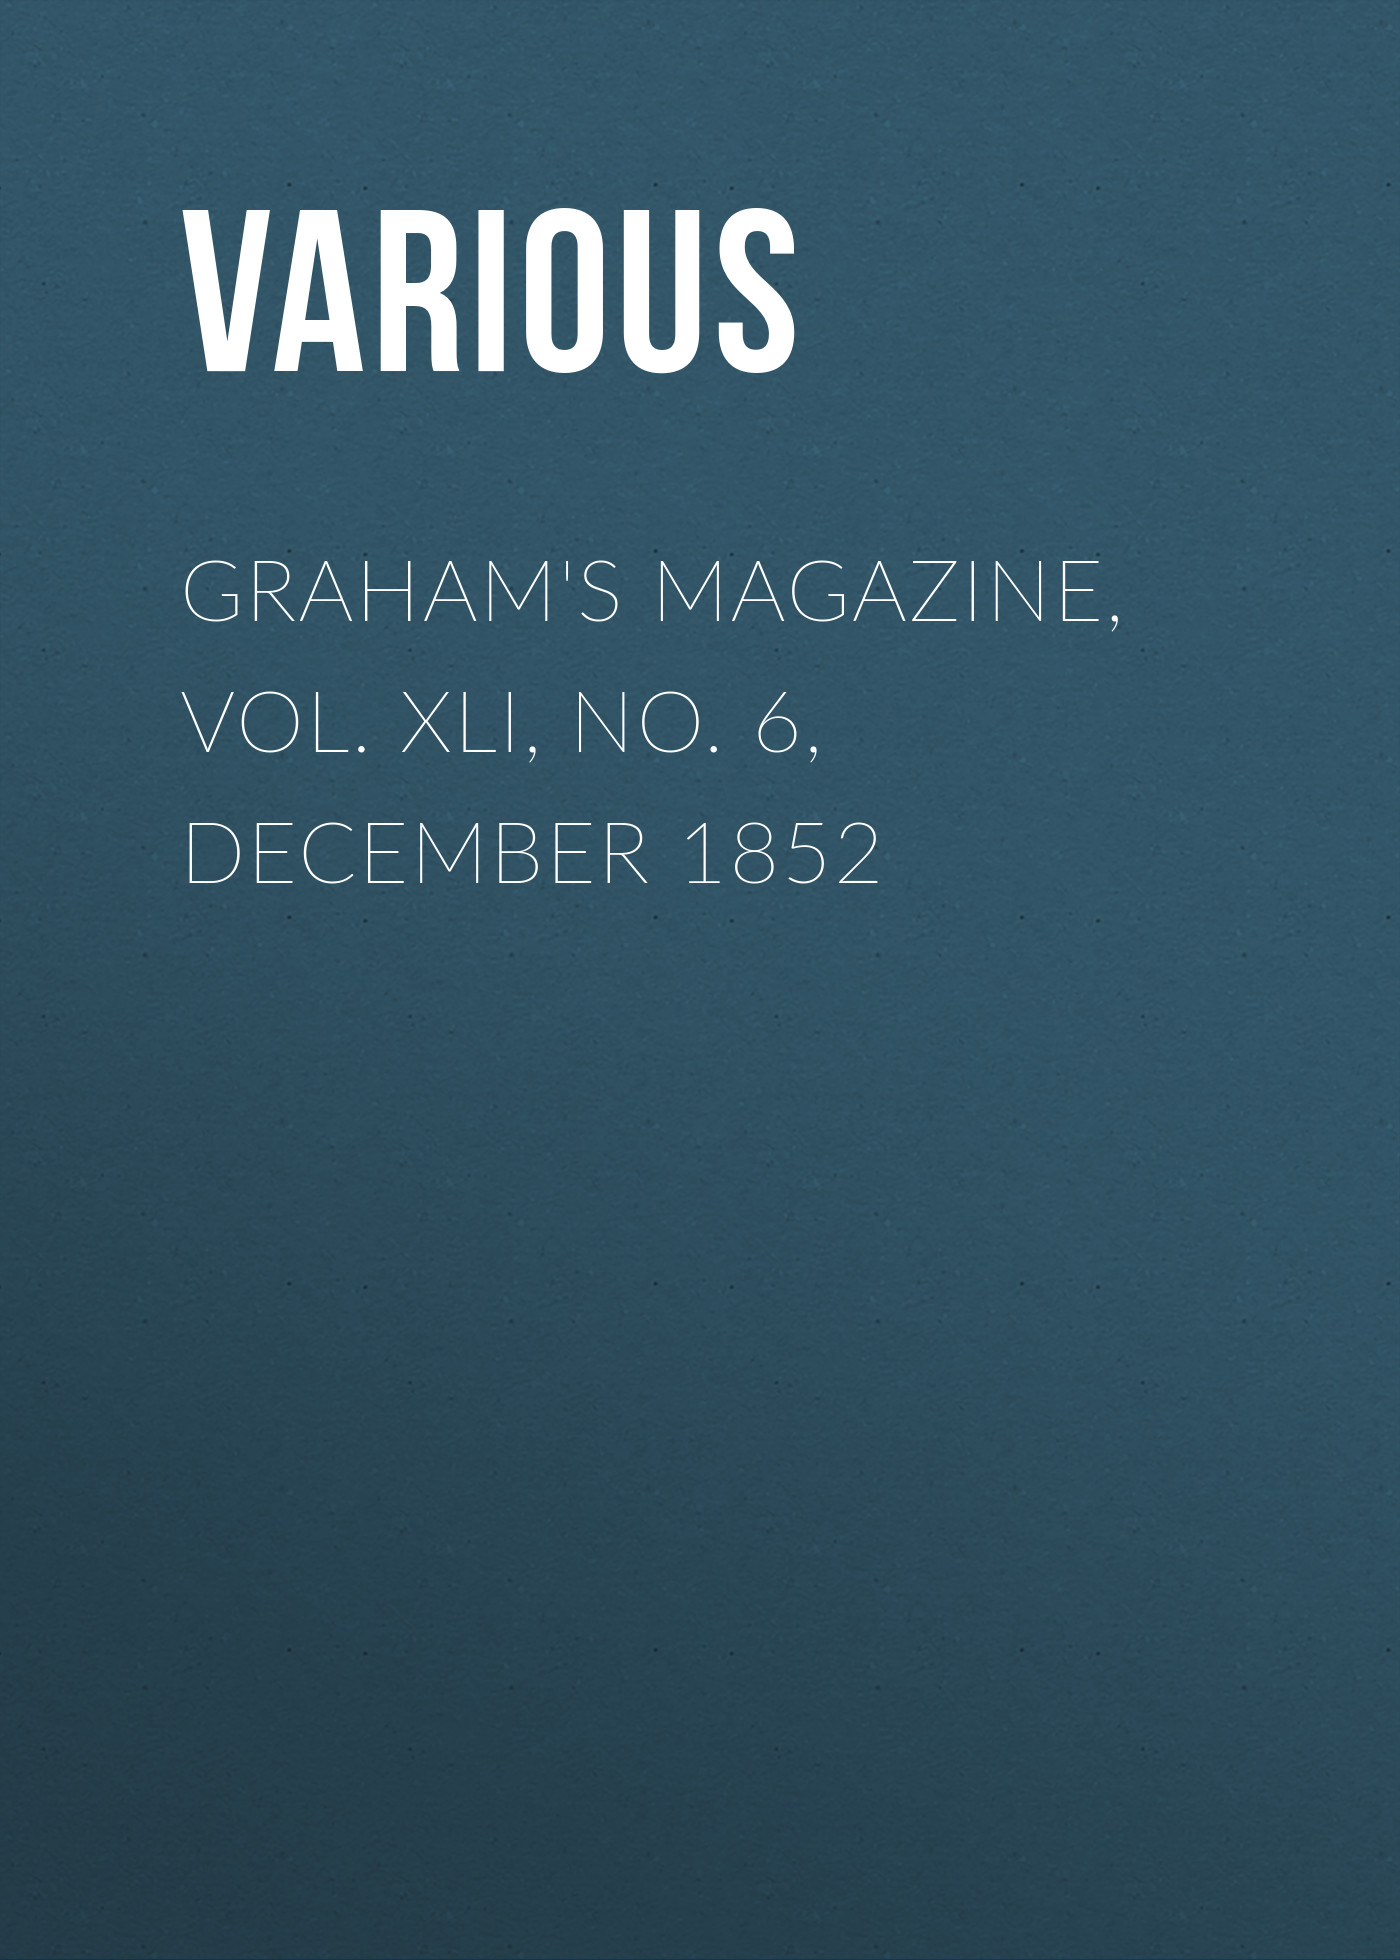 Various Graham's Magazine, Vol. XLI, No. 6, December 1852